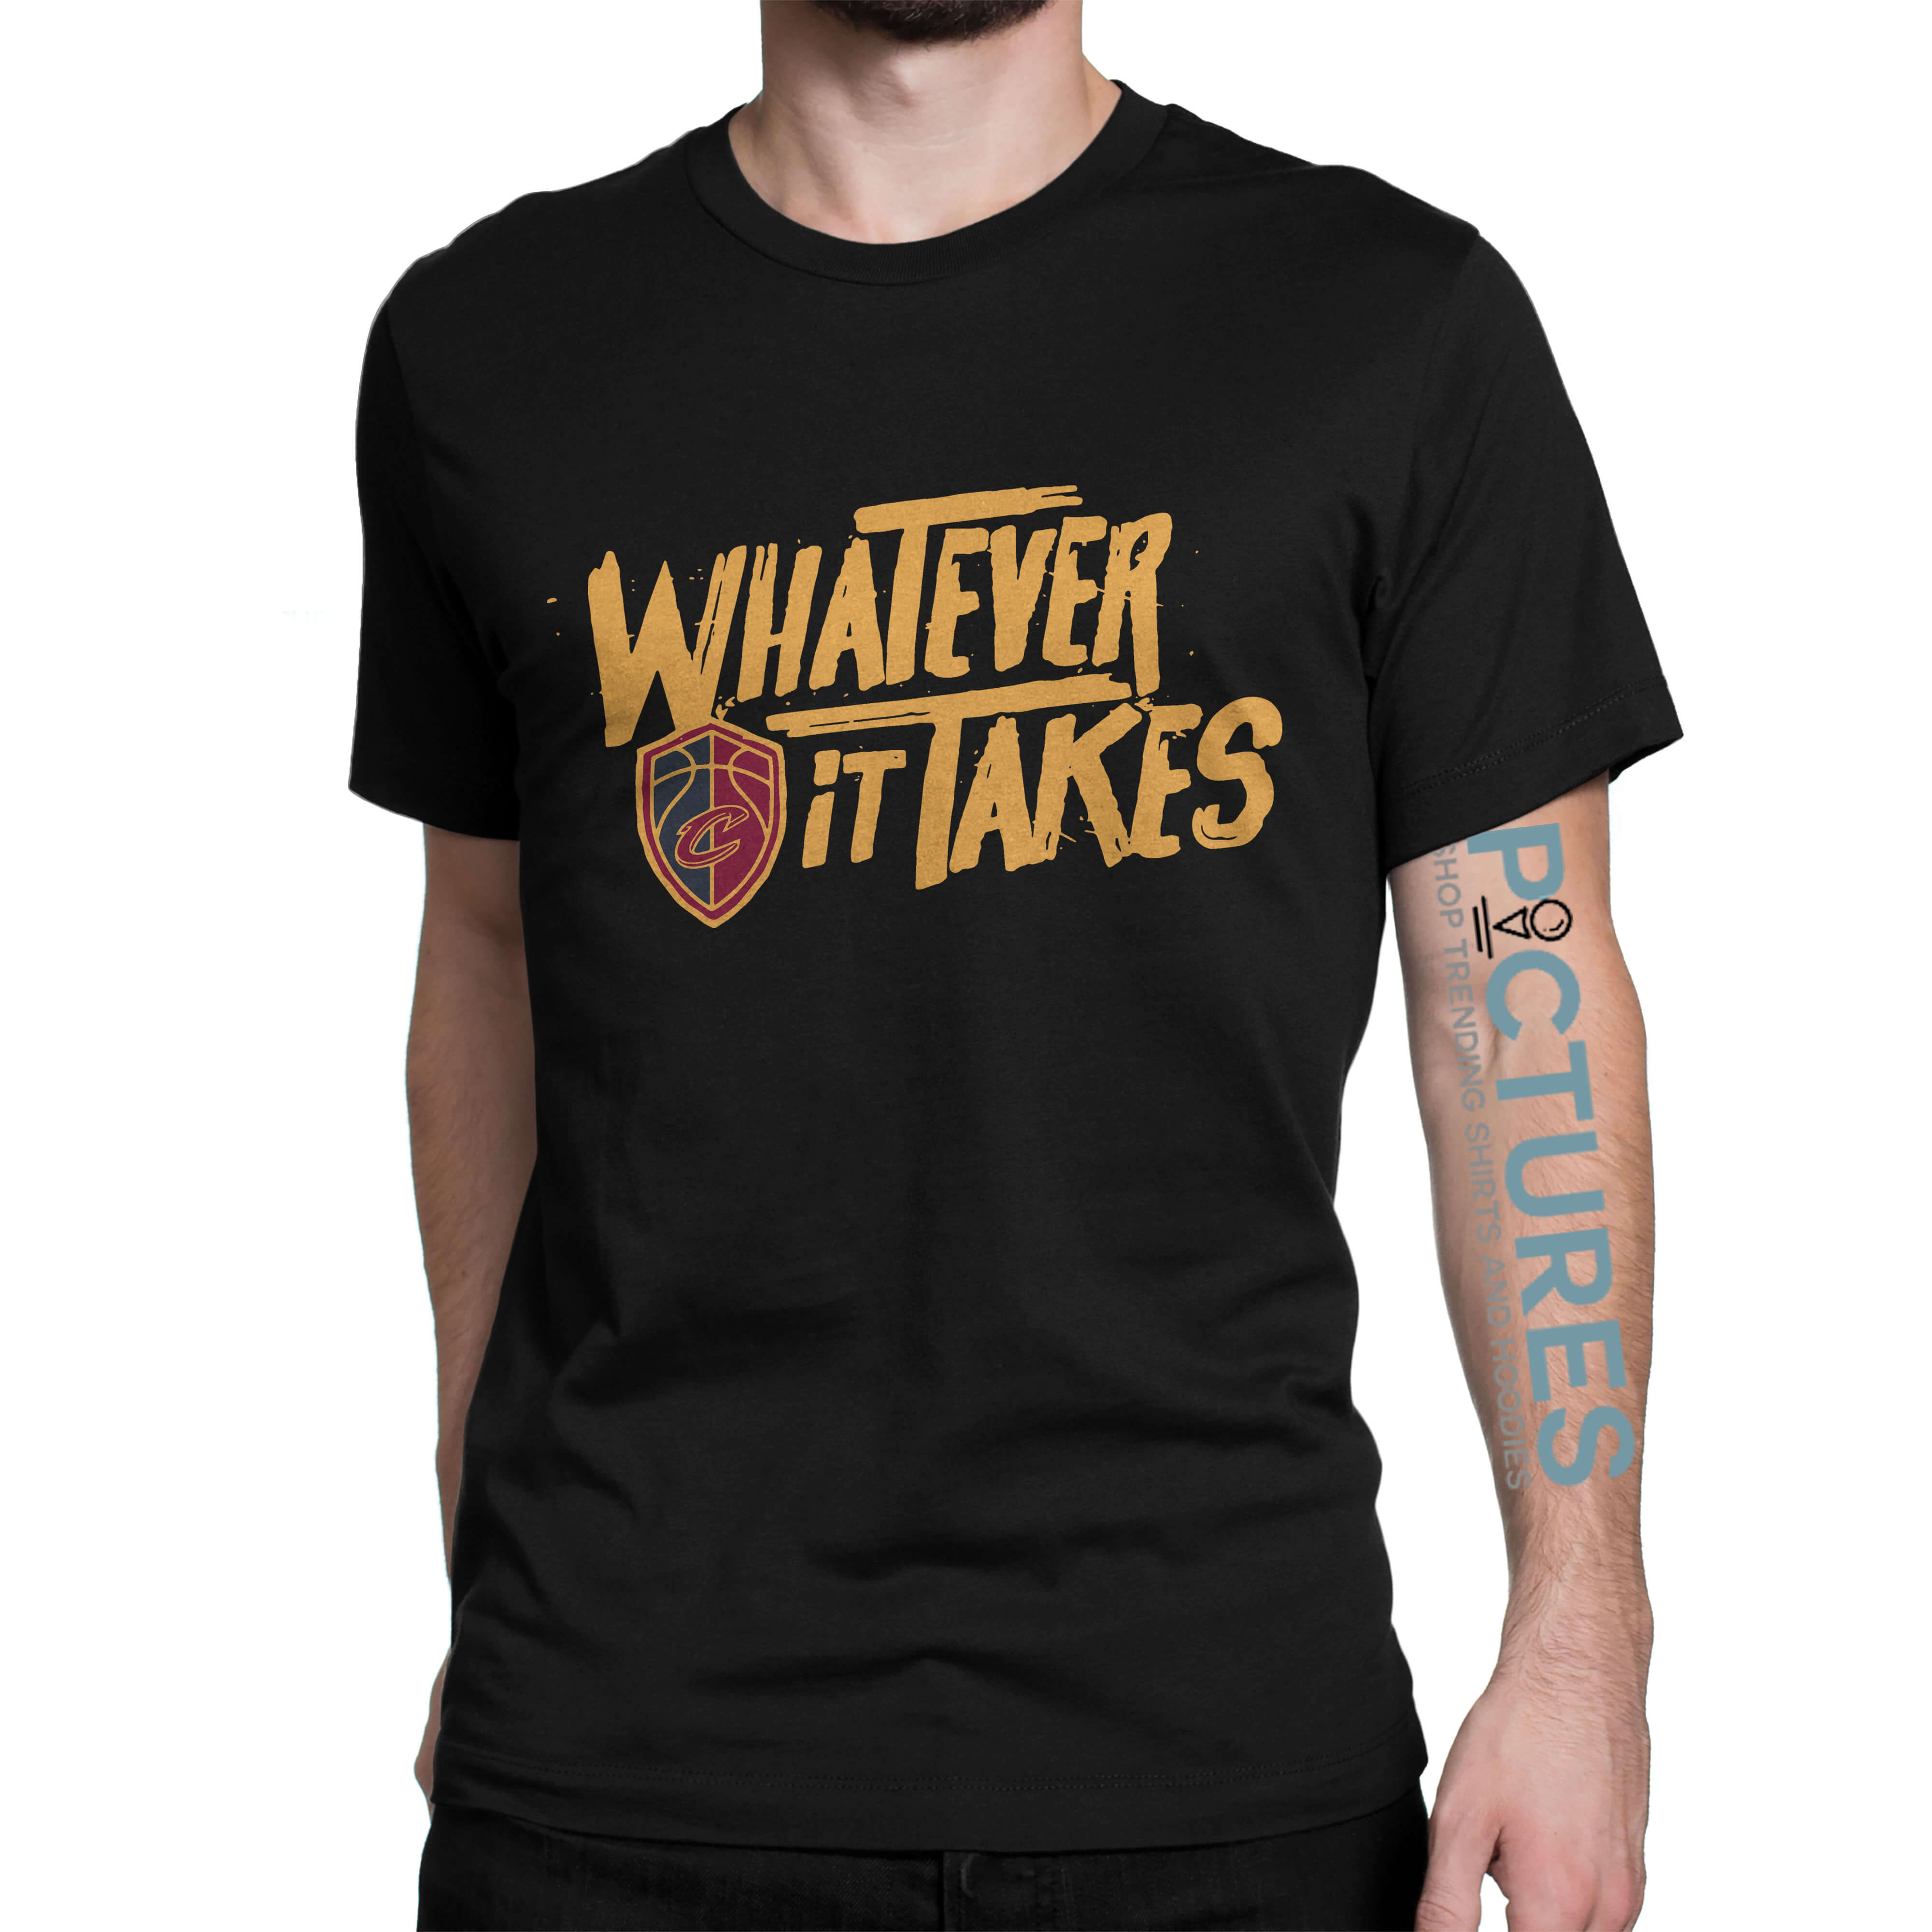 Cleveland Whatever it takes shirt